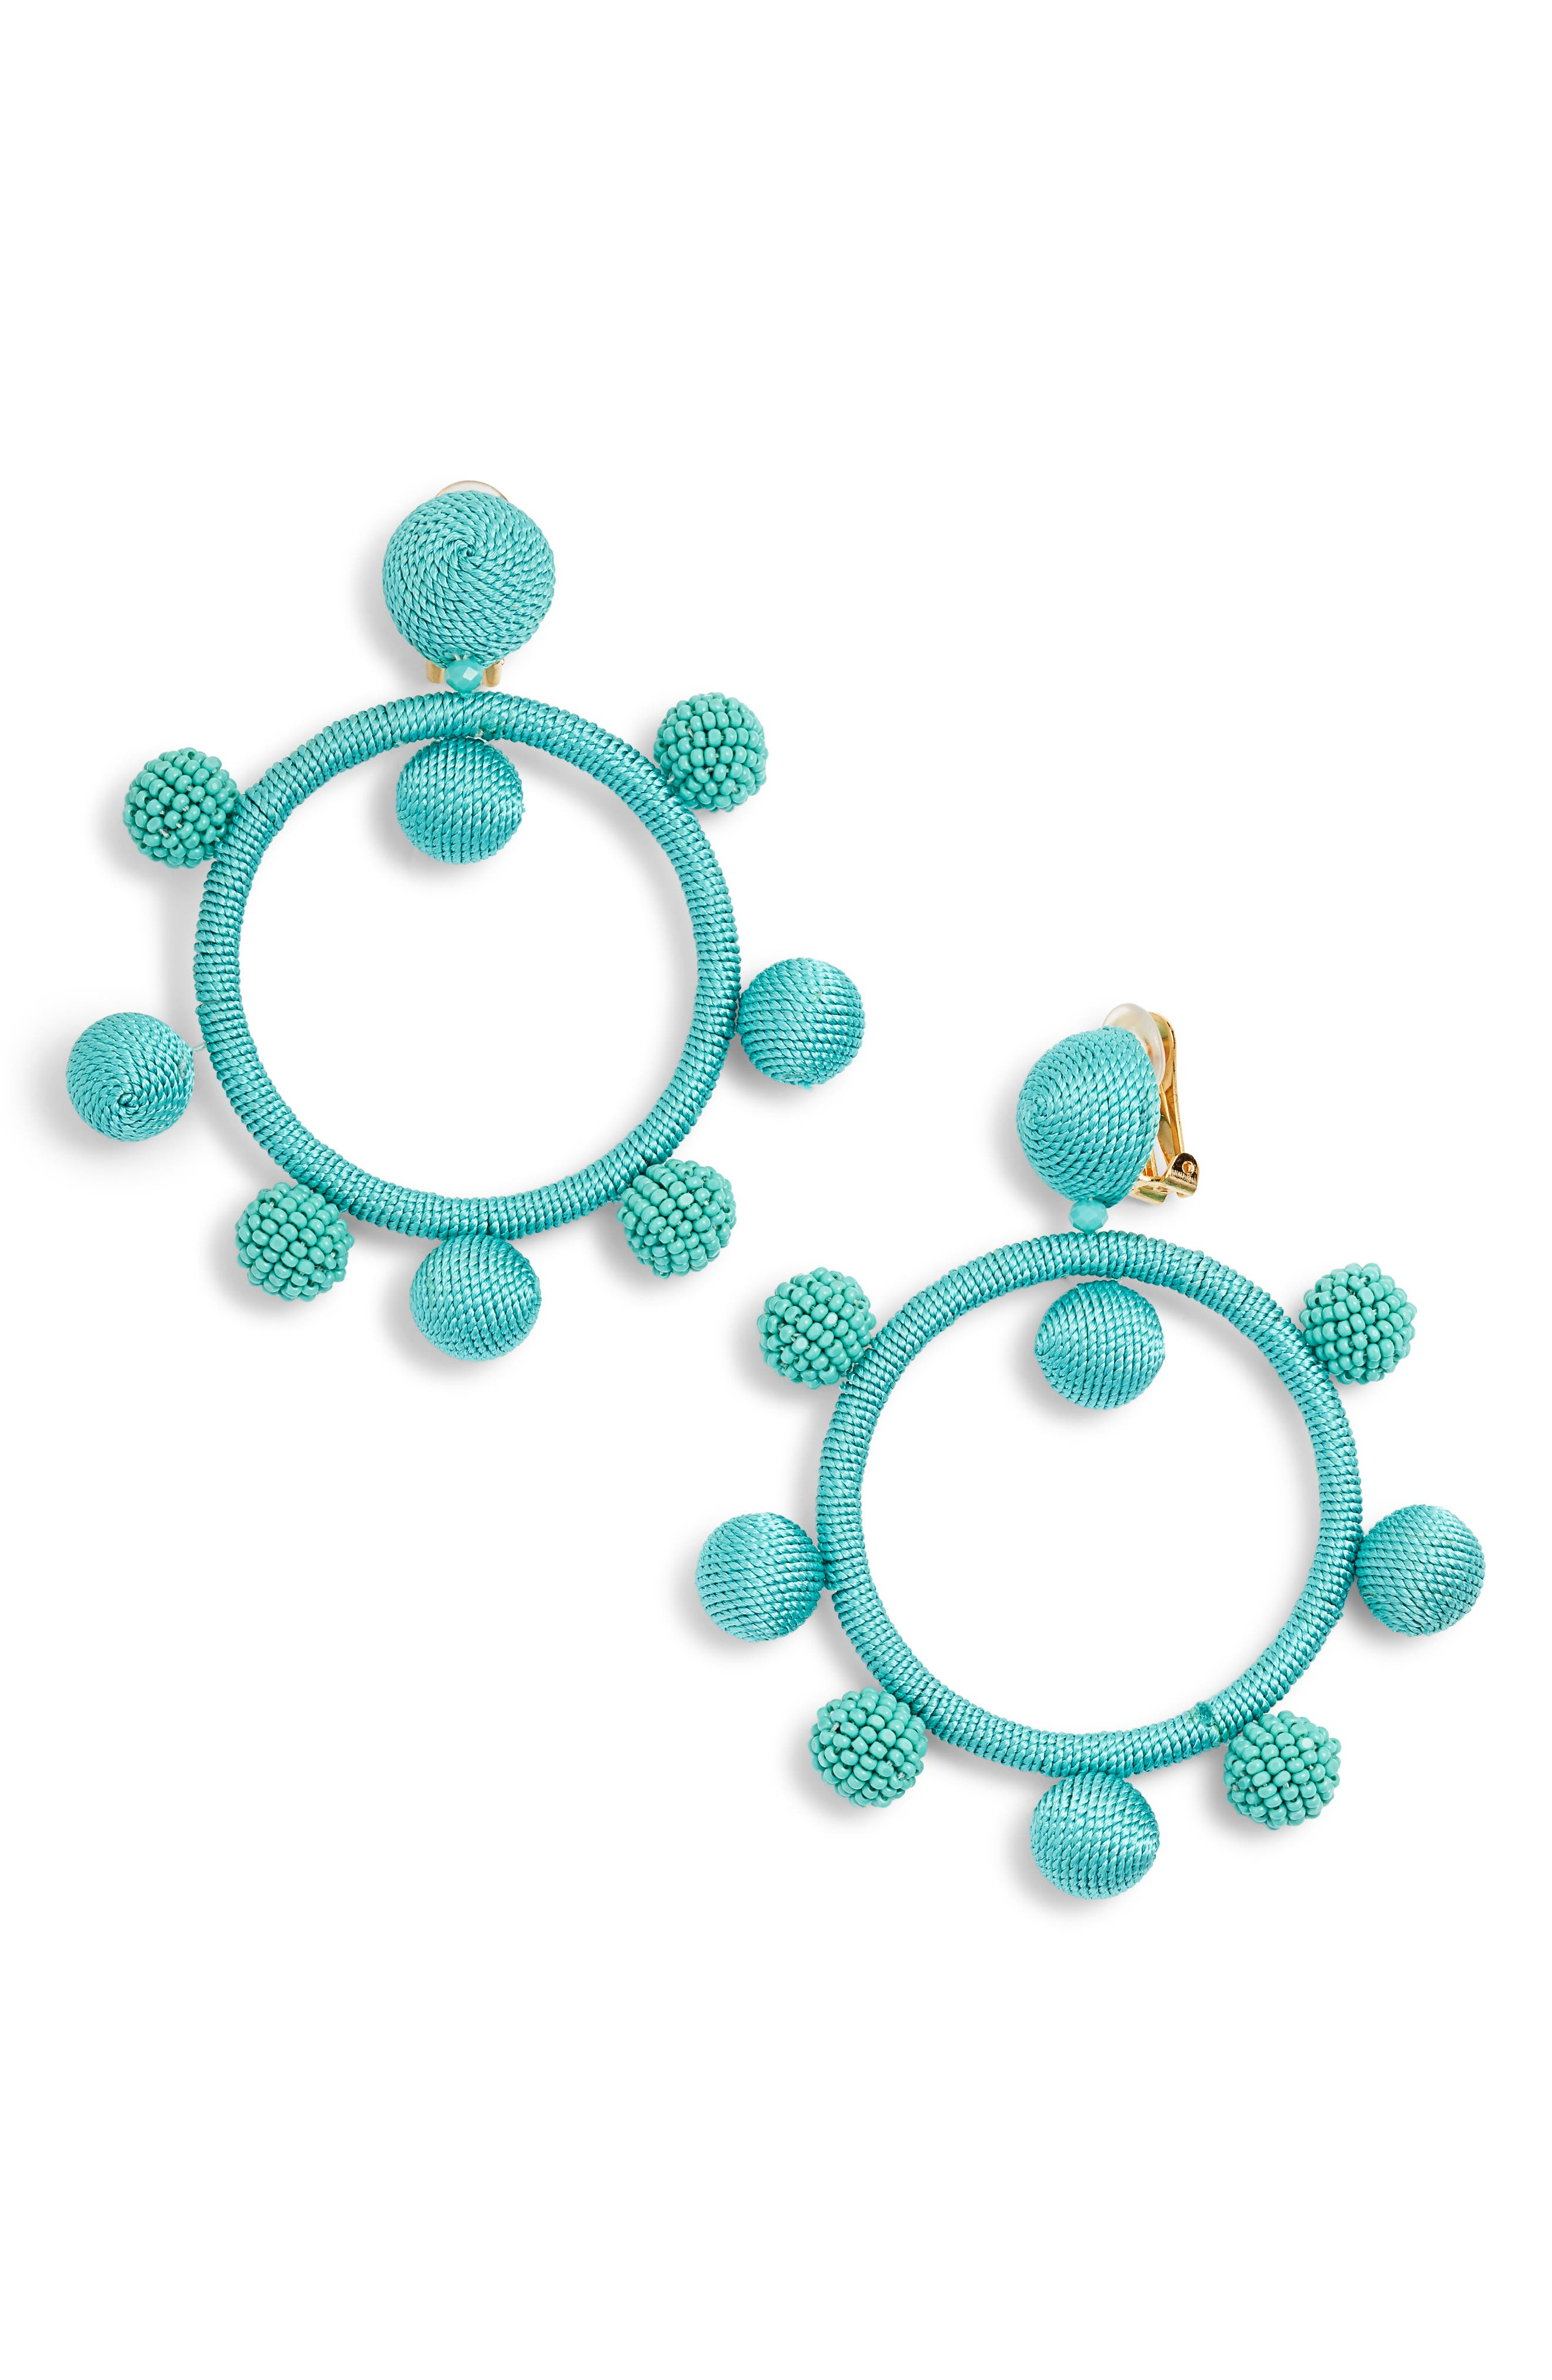 Oscar de la Renta Silken and Beaded Ball Hoop Earrings